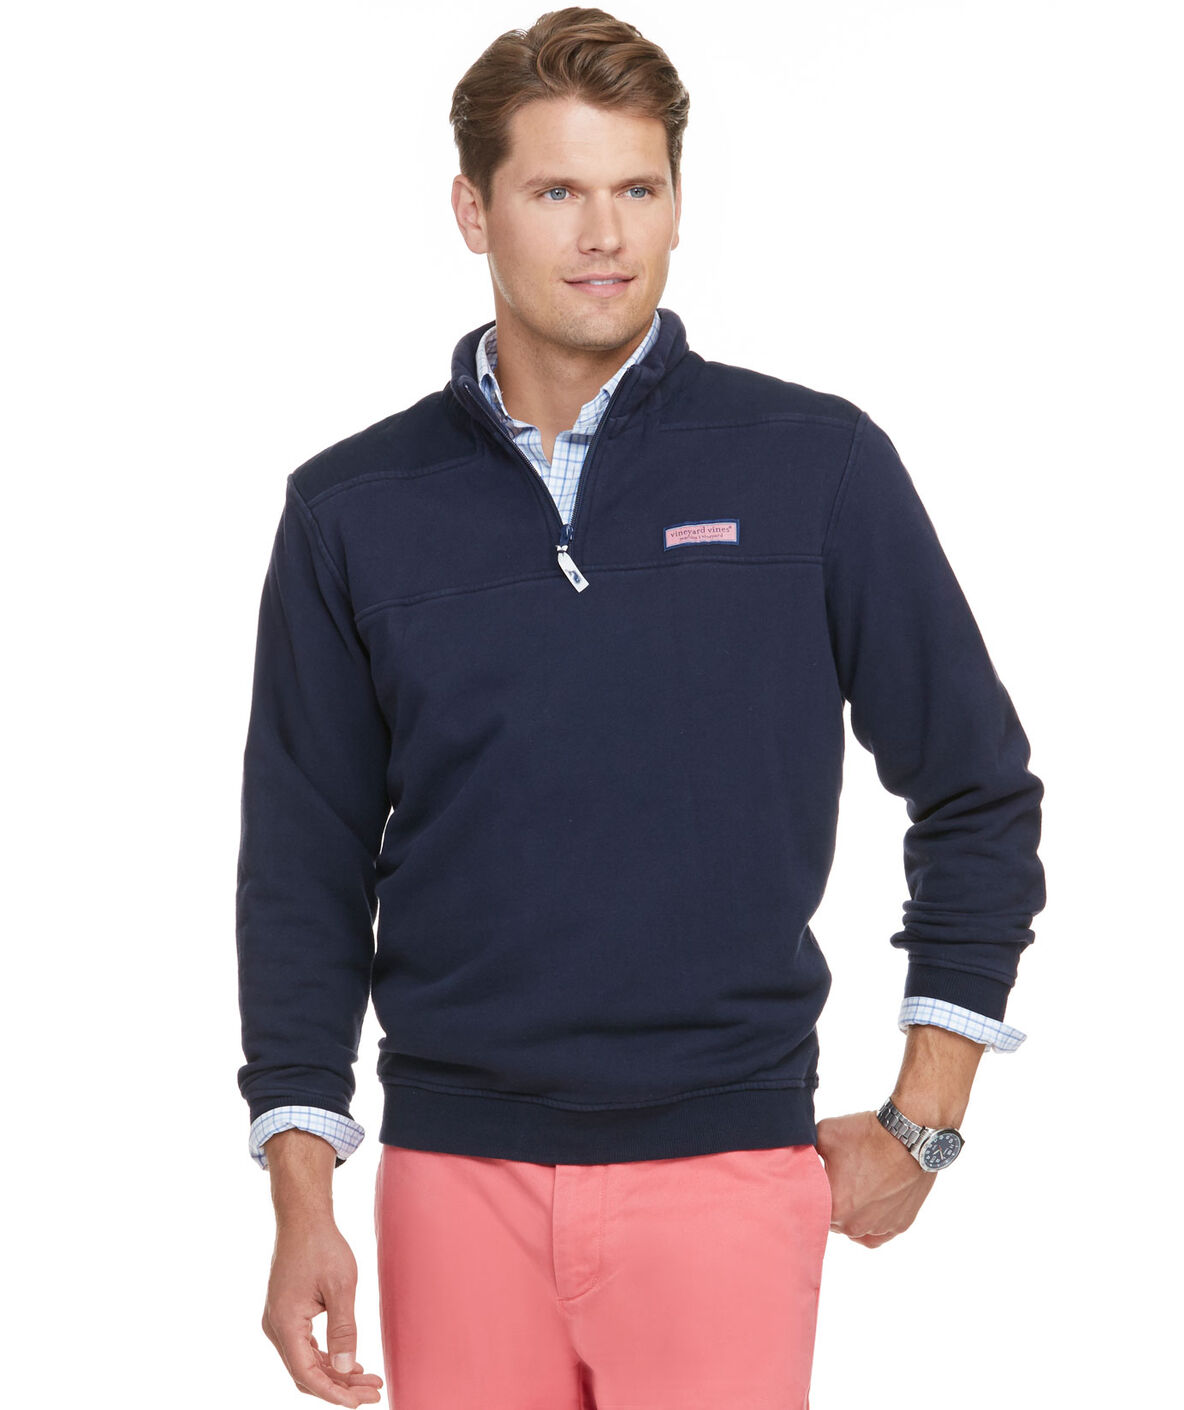 Men S Pullovers Shep Shirt 1 4 Zip Pullovers For Men